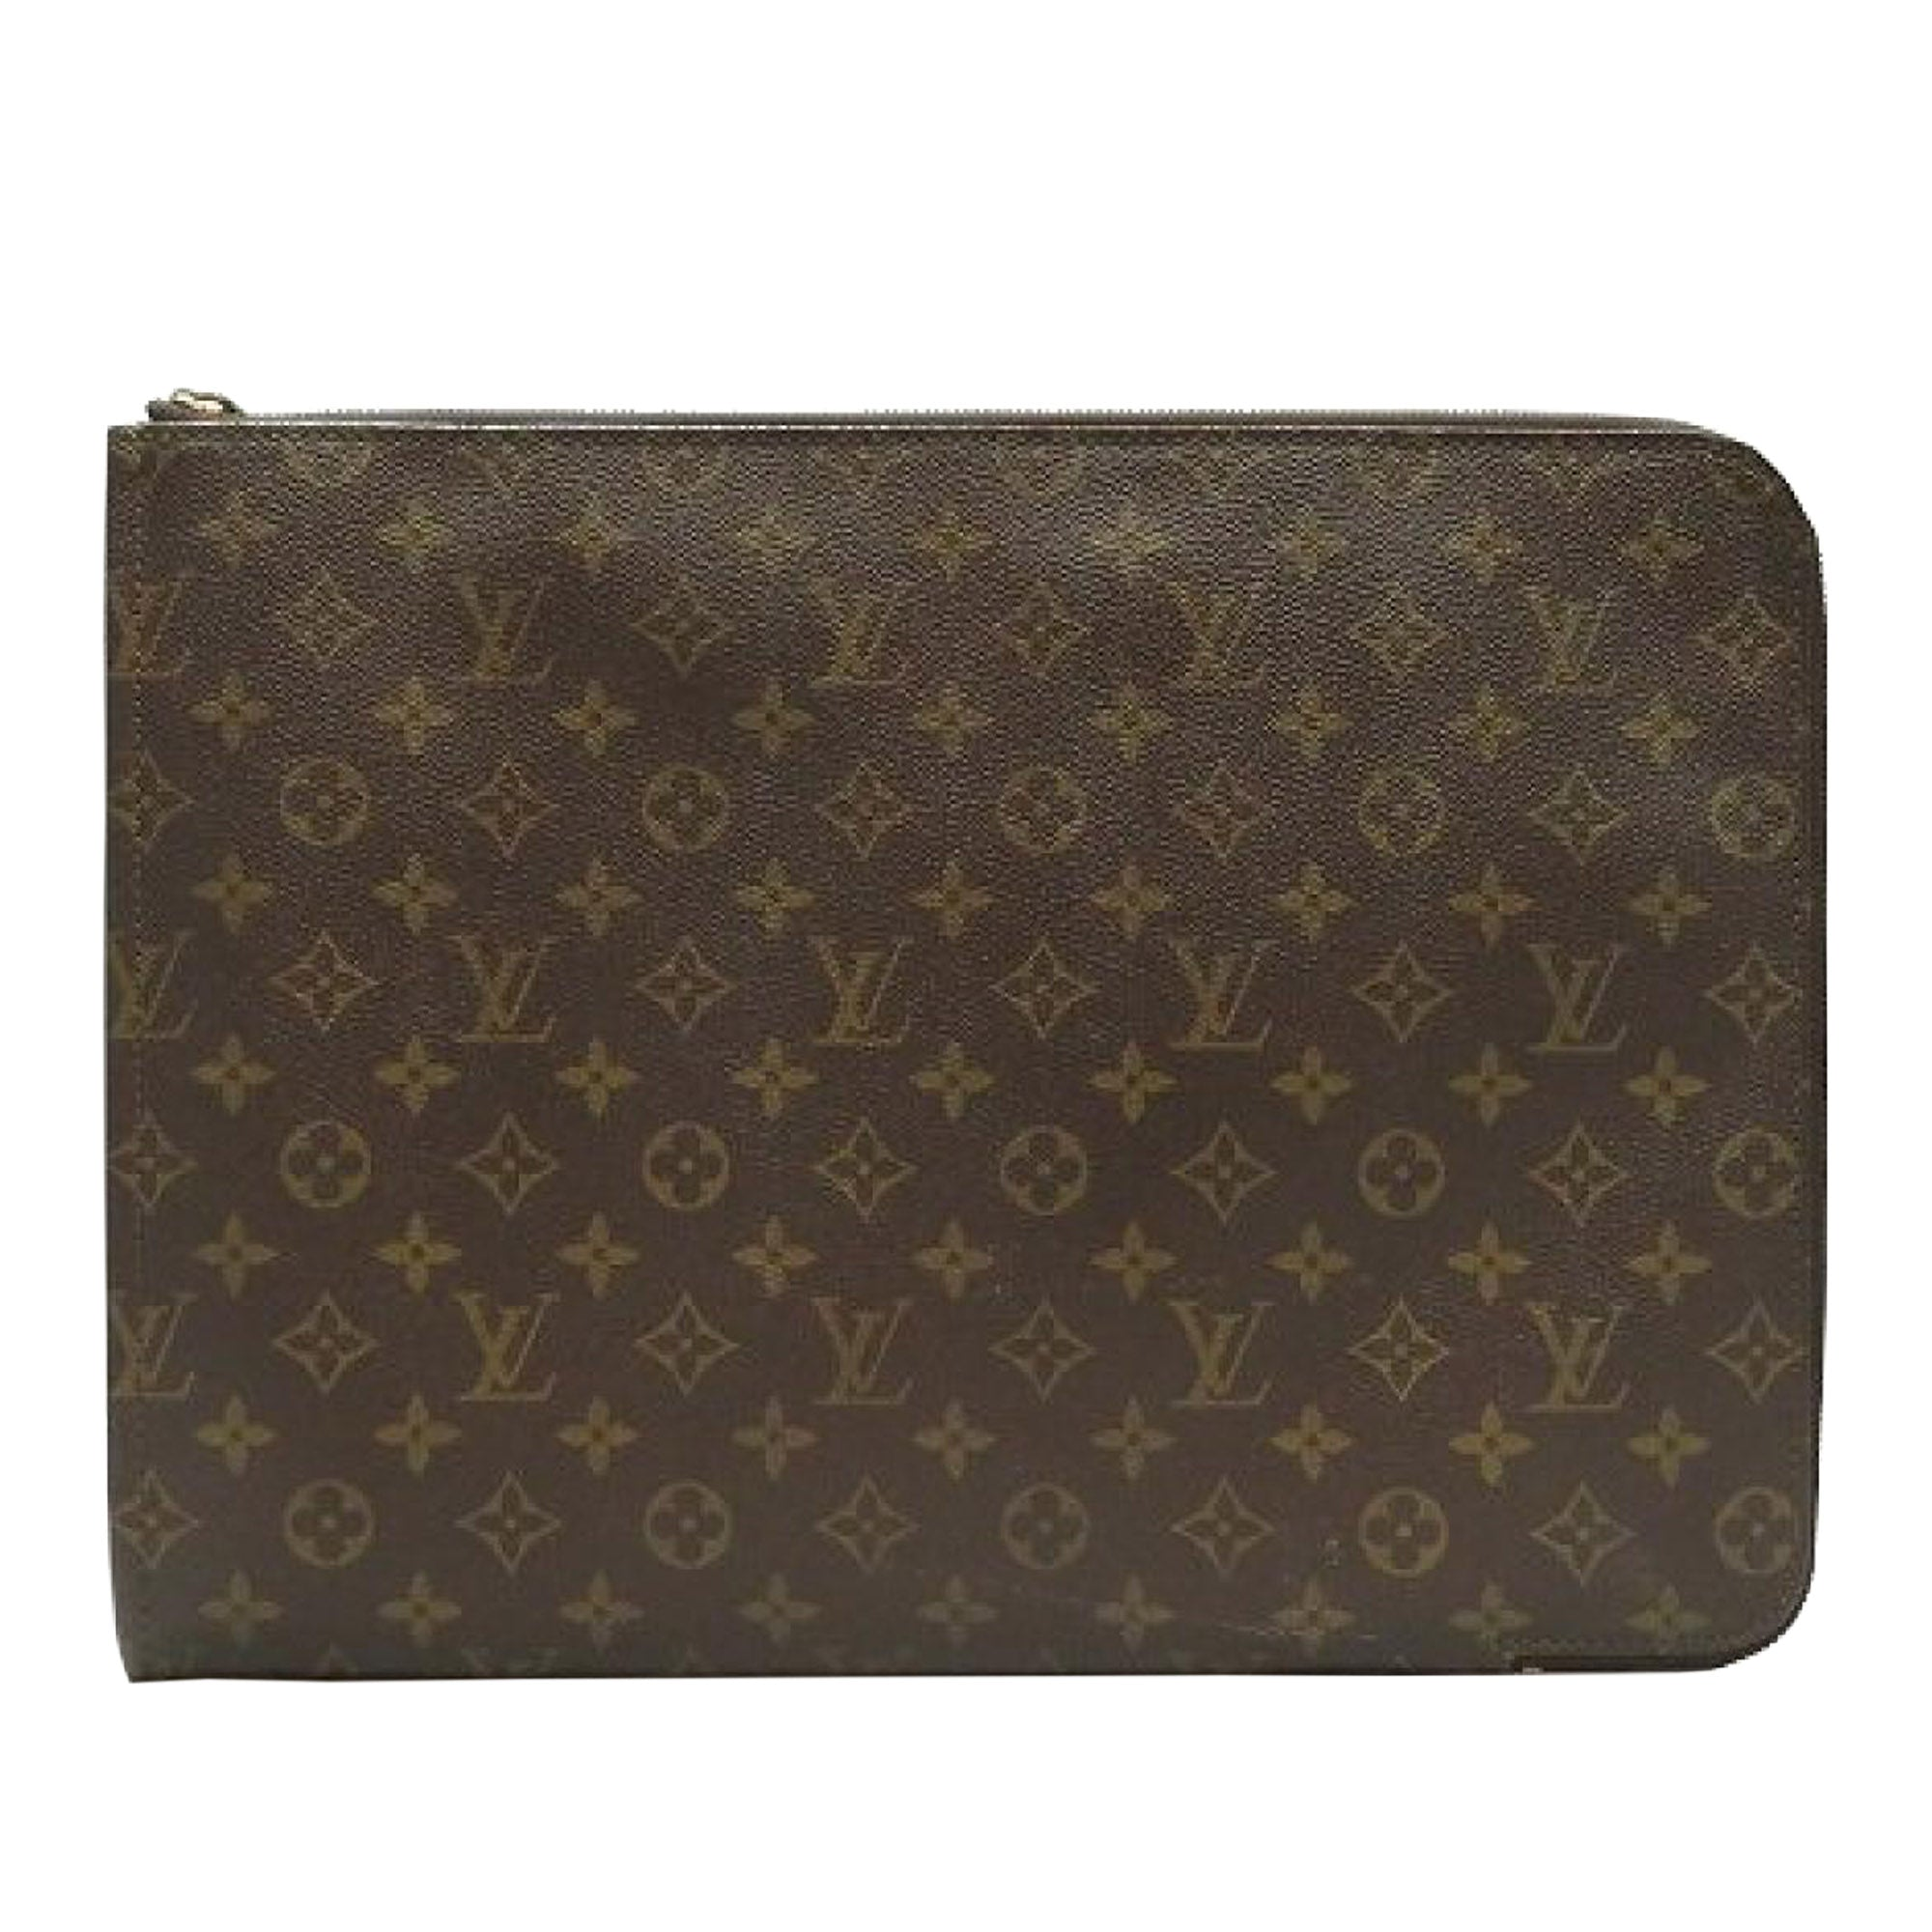 Louis Vuitton Brown Monogram Poche Documents Portfolio